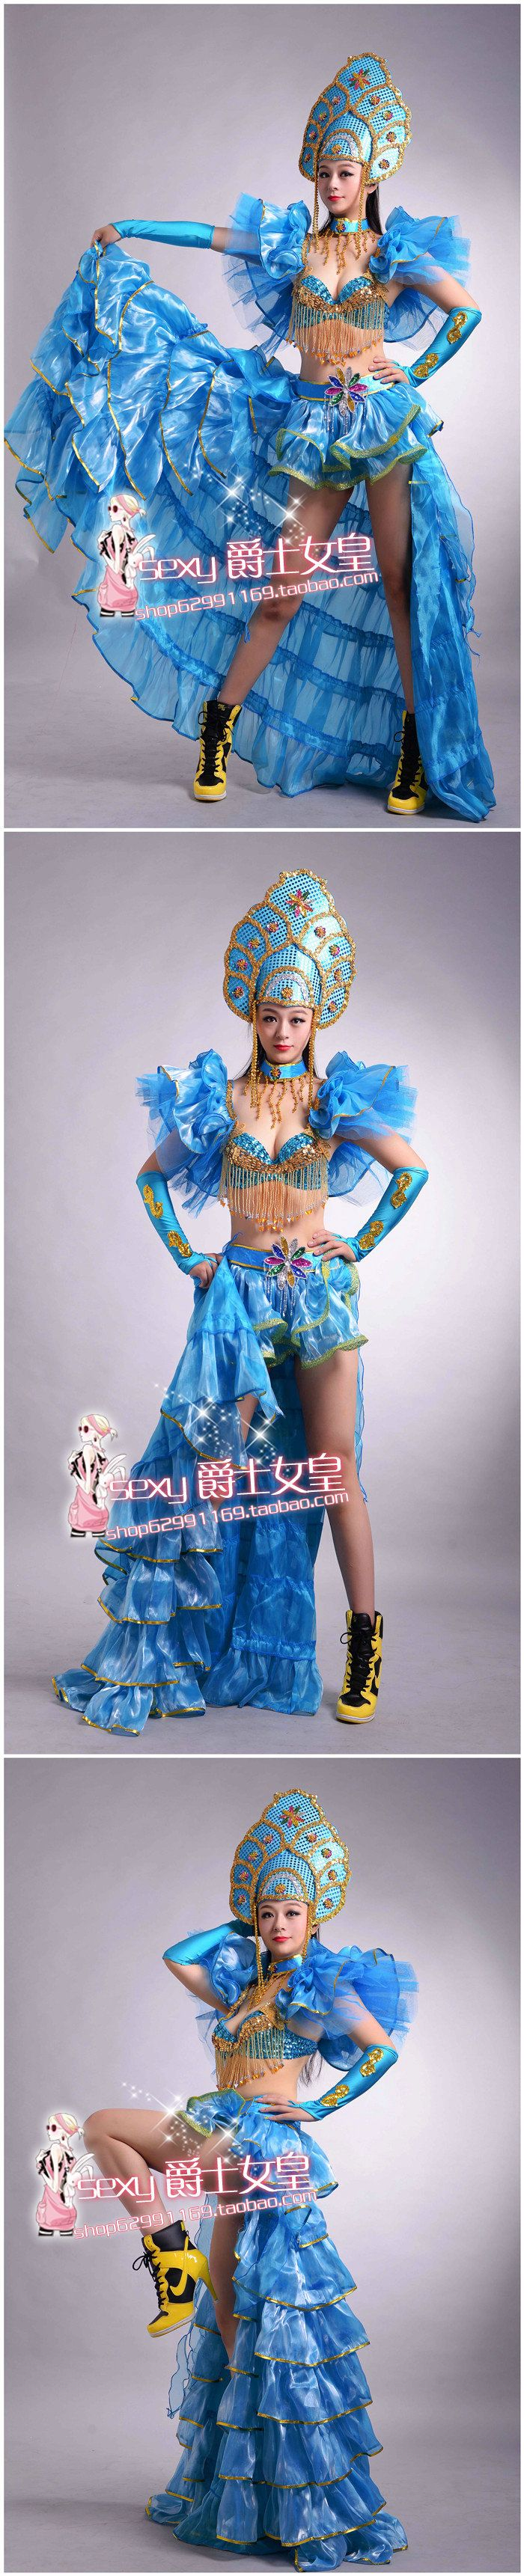 Brazil women Opening show Costume sexy performance wear national dance clothing set Feather headdress nightclub singer dancer-inChinese Folk Dance from Novelty & Special Use on Aliexpress.com | Alibaba Group